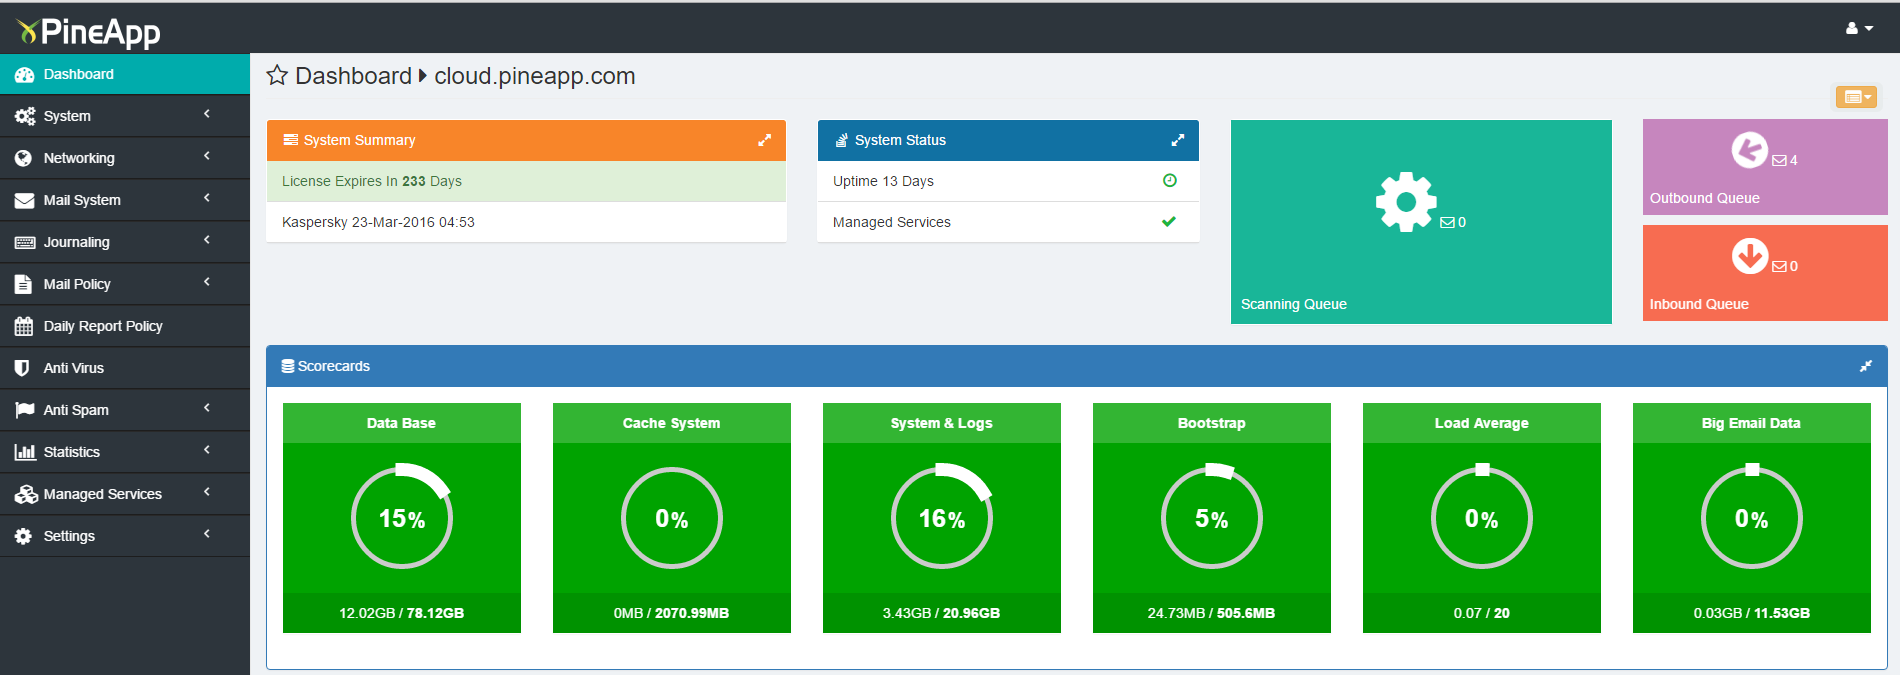 Managed Services Dashboard pic